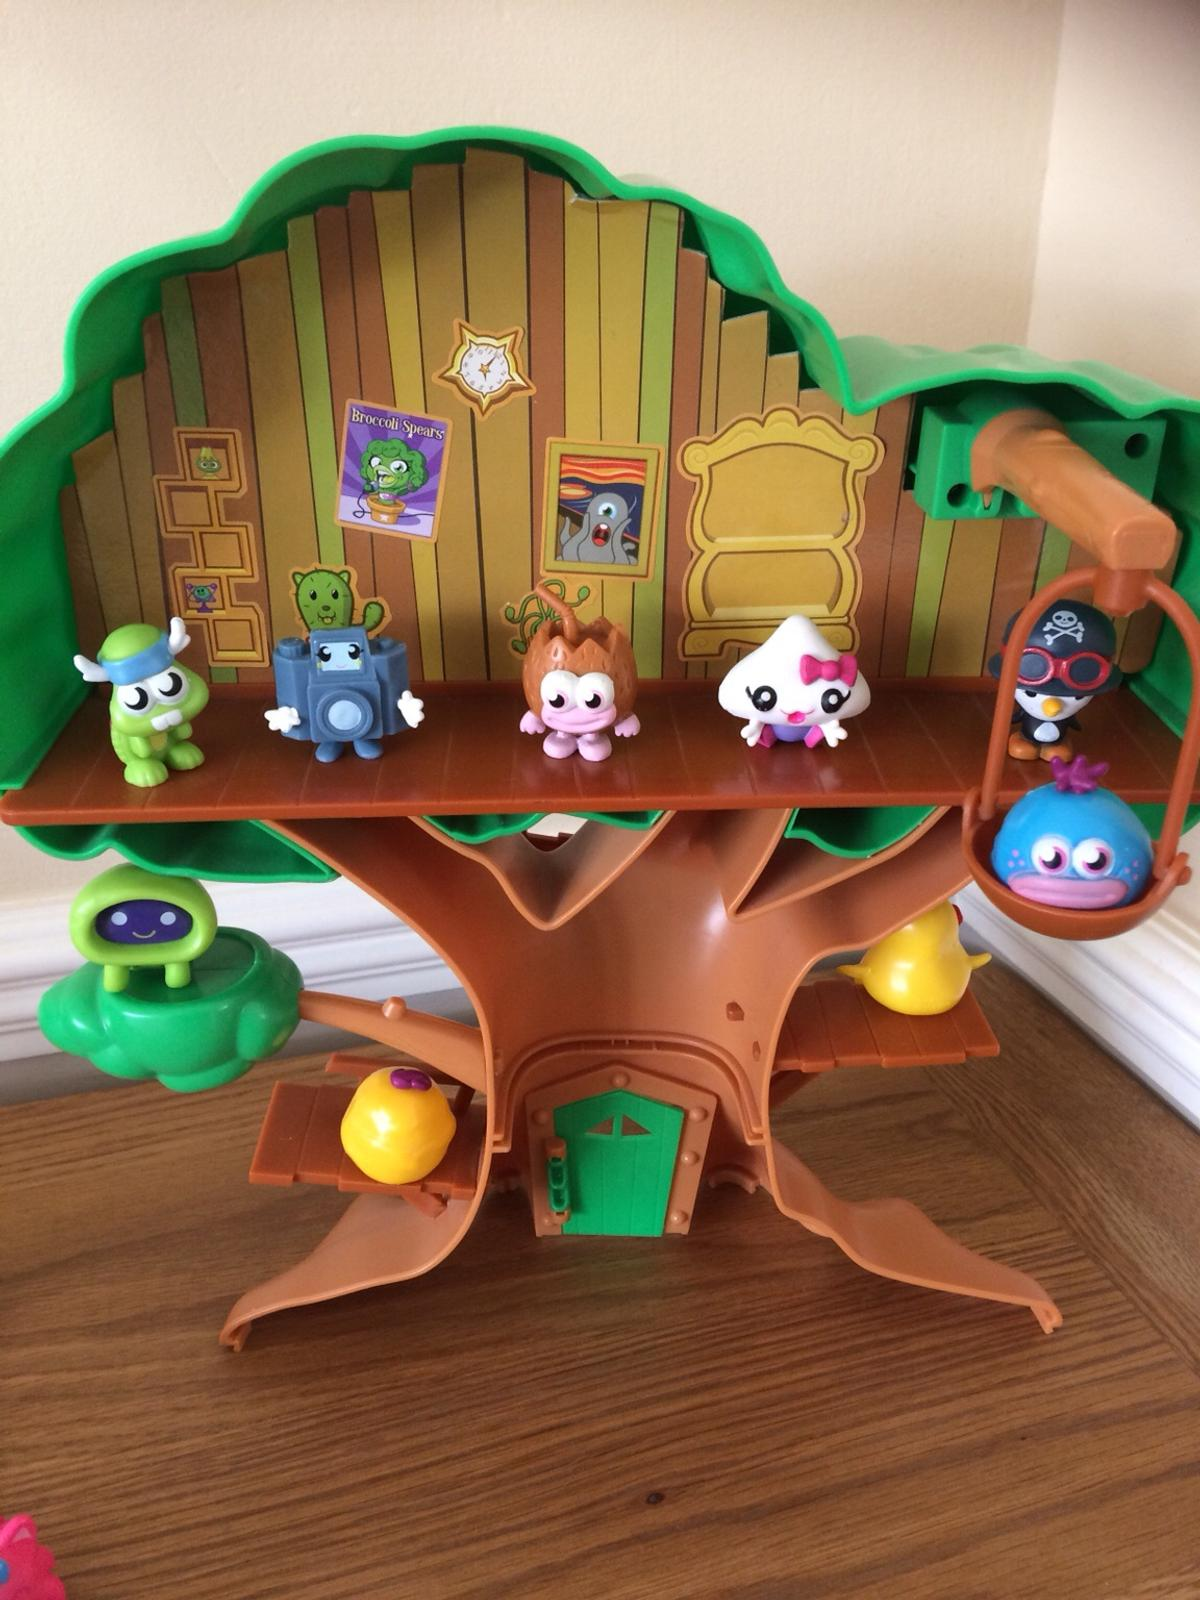 Moshi Monster Treehouse 45 Moshi Monsters In B75 Birmingham For 10 00 For Sale Shpock